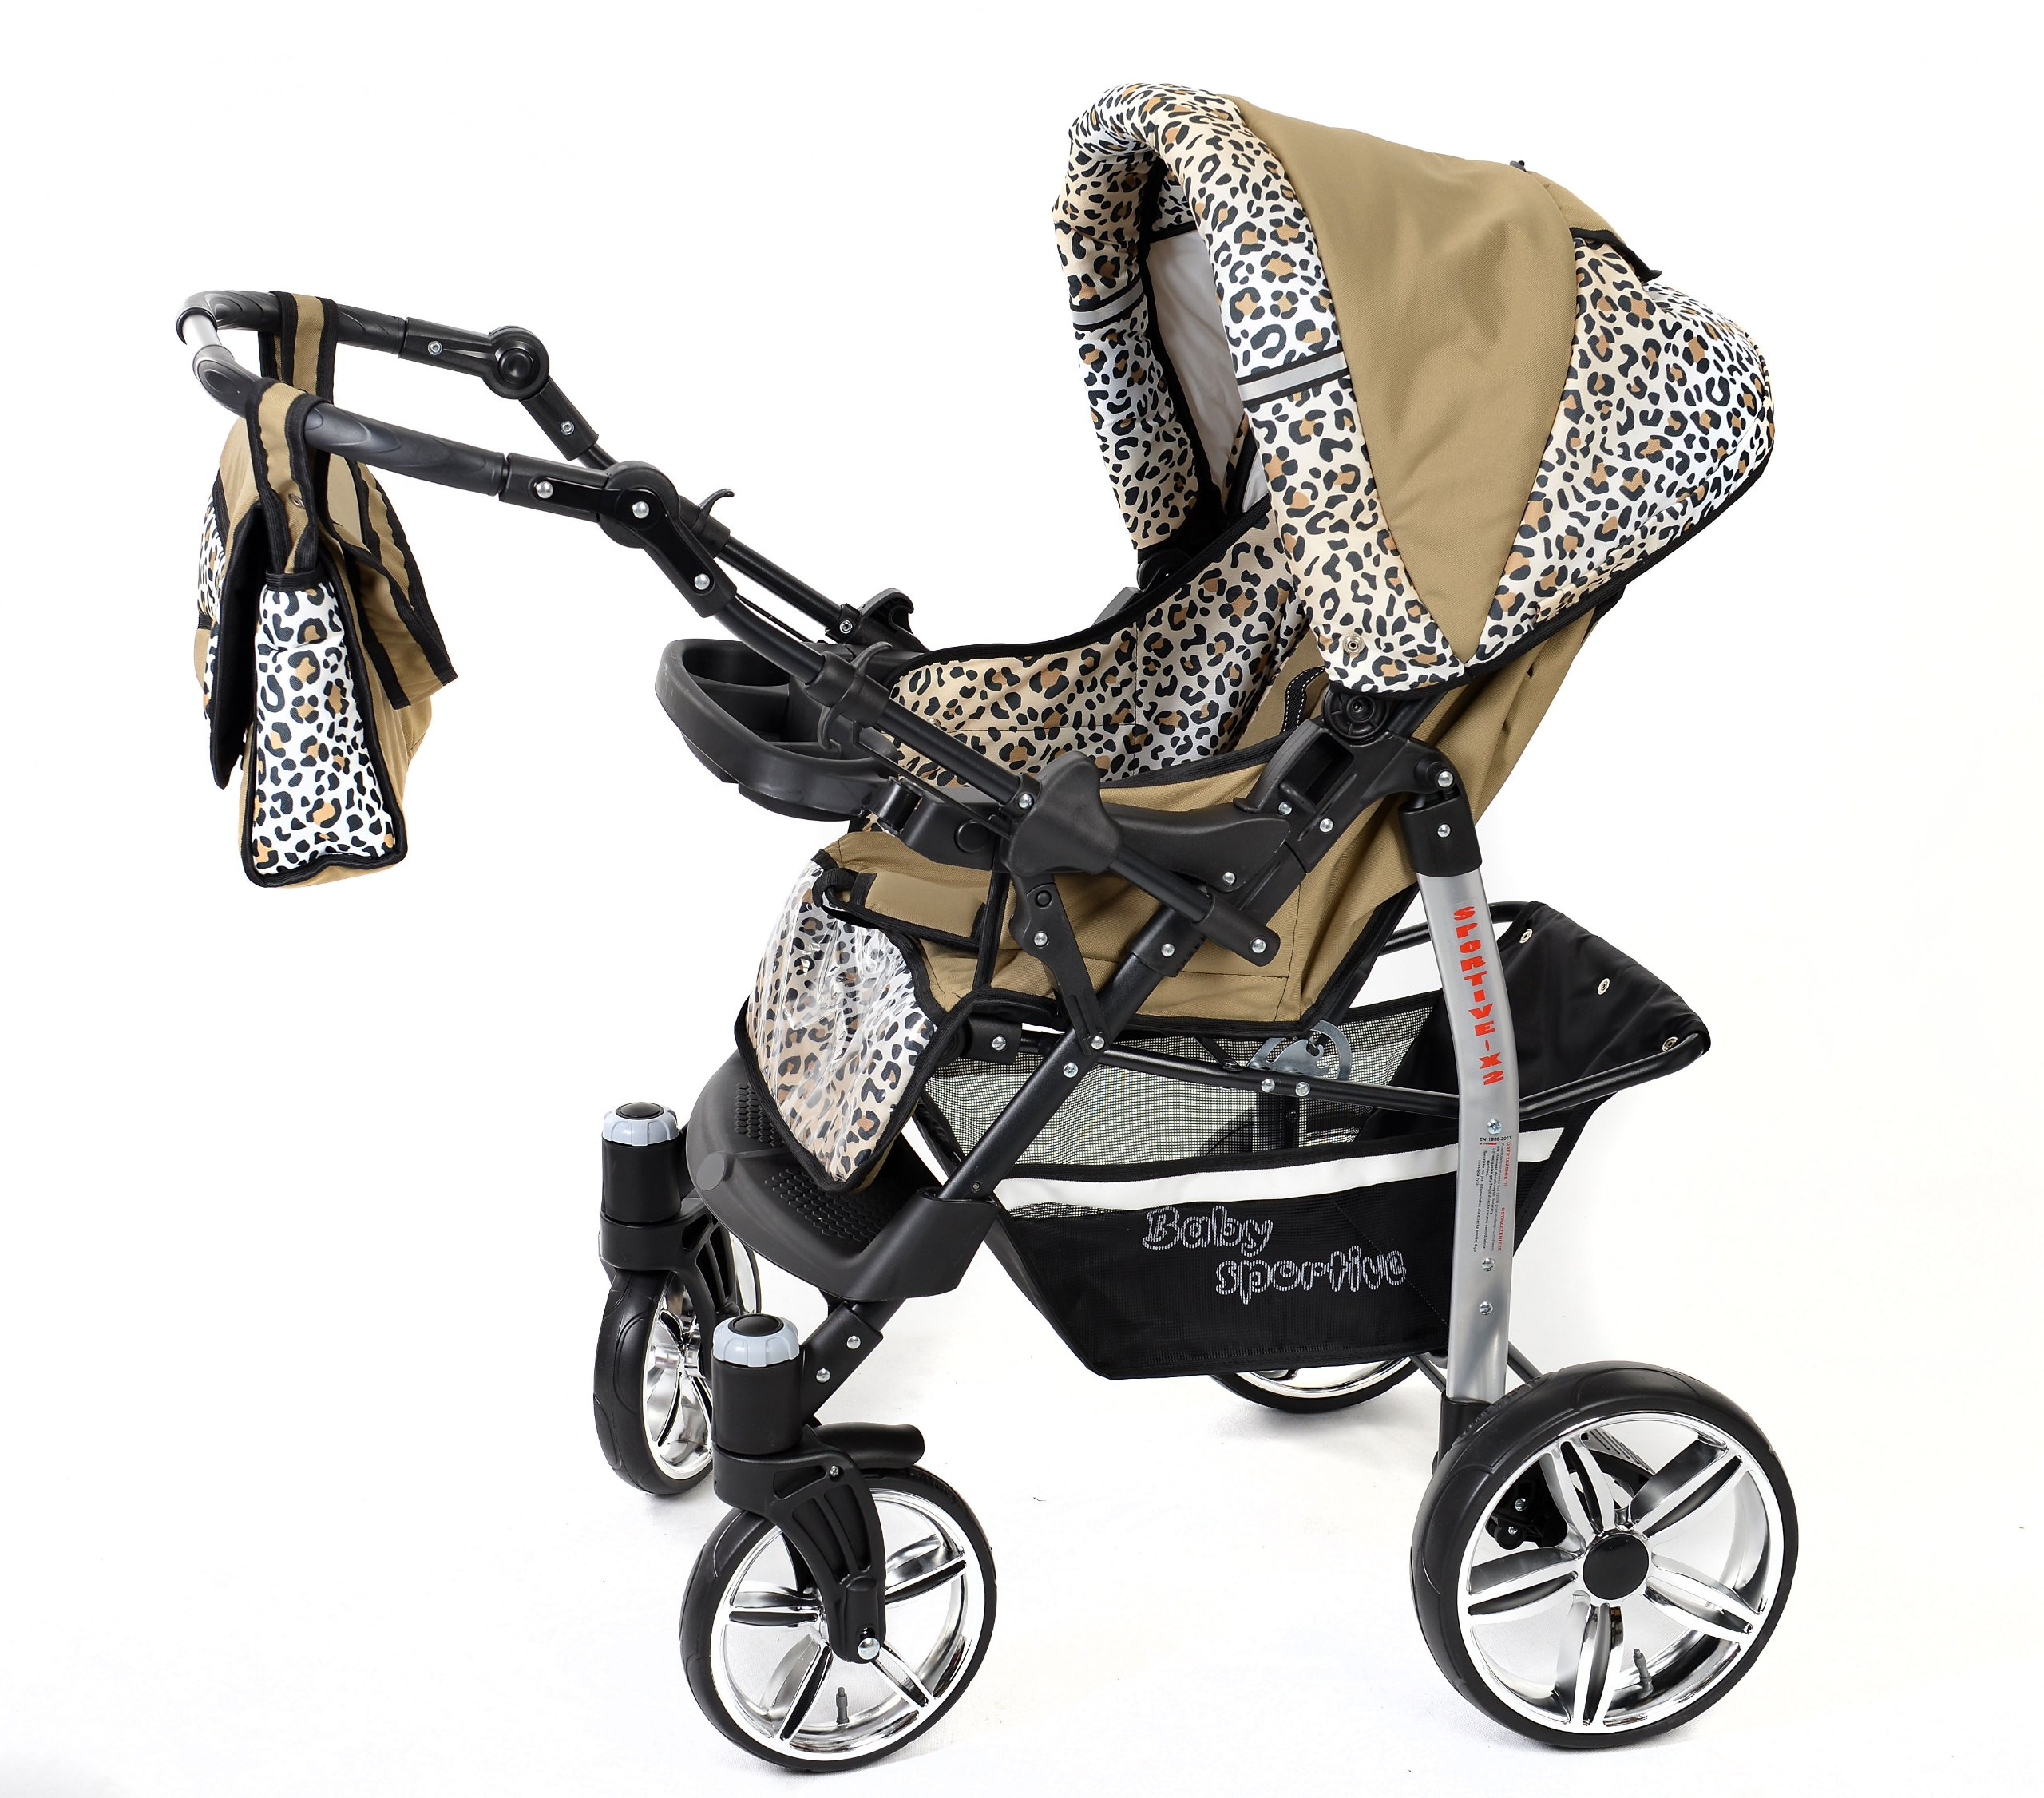 Sportive X2, 3-in-1 Travel System incl. Baby Pram with Swivel Wheels, Car Seat, Pushchair & Accessories (3-in-1 Travel System, Beige & Leopard) Baby Sportive 3 in 1 Travel System All in One Set - Pram, Car Carrier Seat and Sport Buggy + Accessories: carrier bag, rain protection, mosquito net, changing mat, removable bottle holder and removable tray for your child's bits and pieces Suitable from birth, Easy Quick Folding System; Large storage basket; Turnable handle bar that allows to face or rear the drive direction; Quick release rear wheels for easy cleaning after muddy walks Front lockable 360o swivel wheels for manoeuvrability , Small sized when folded, fits into many small car trunks, Carry-cot with a removable hood, Reflective elements for better visibility 4